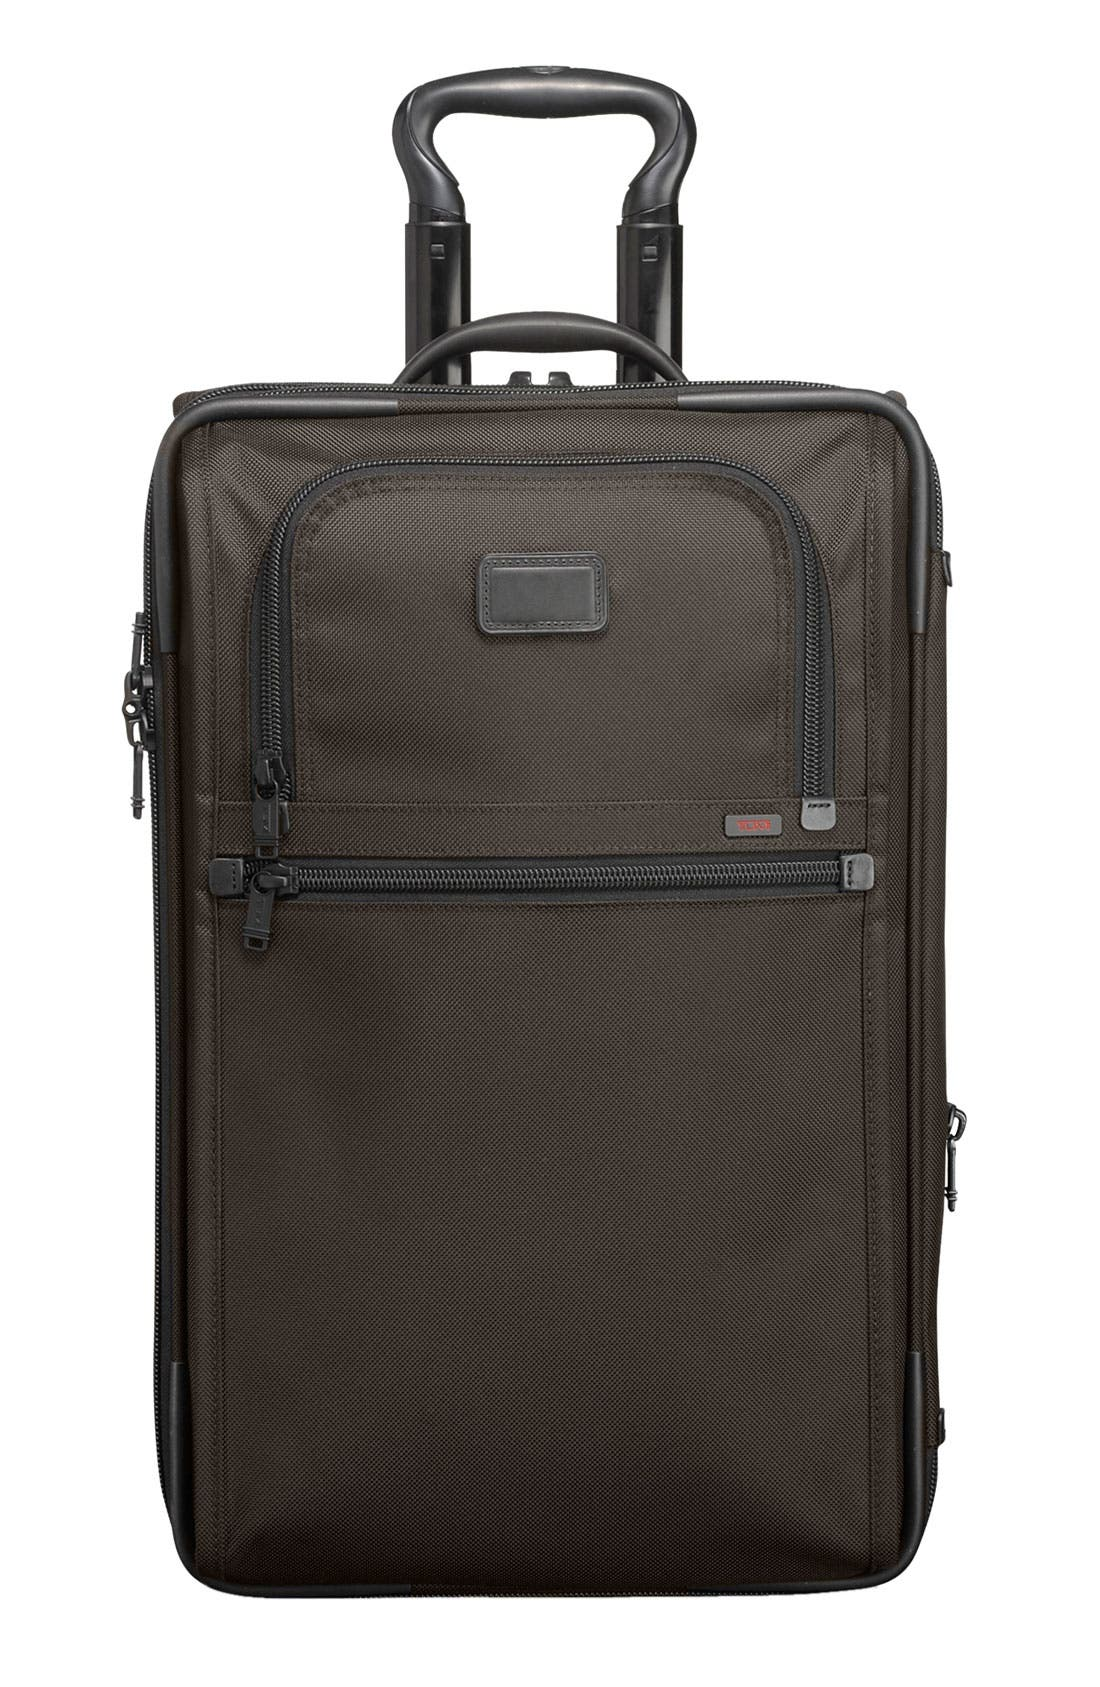 Main Image - Tumi 'Alpha' Frequent Traveler Zippered Expandable Carry-On